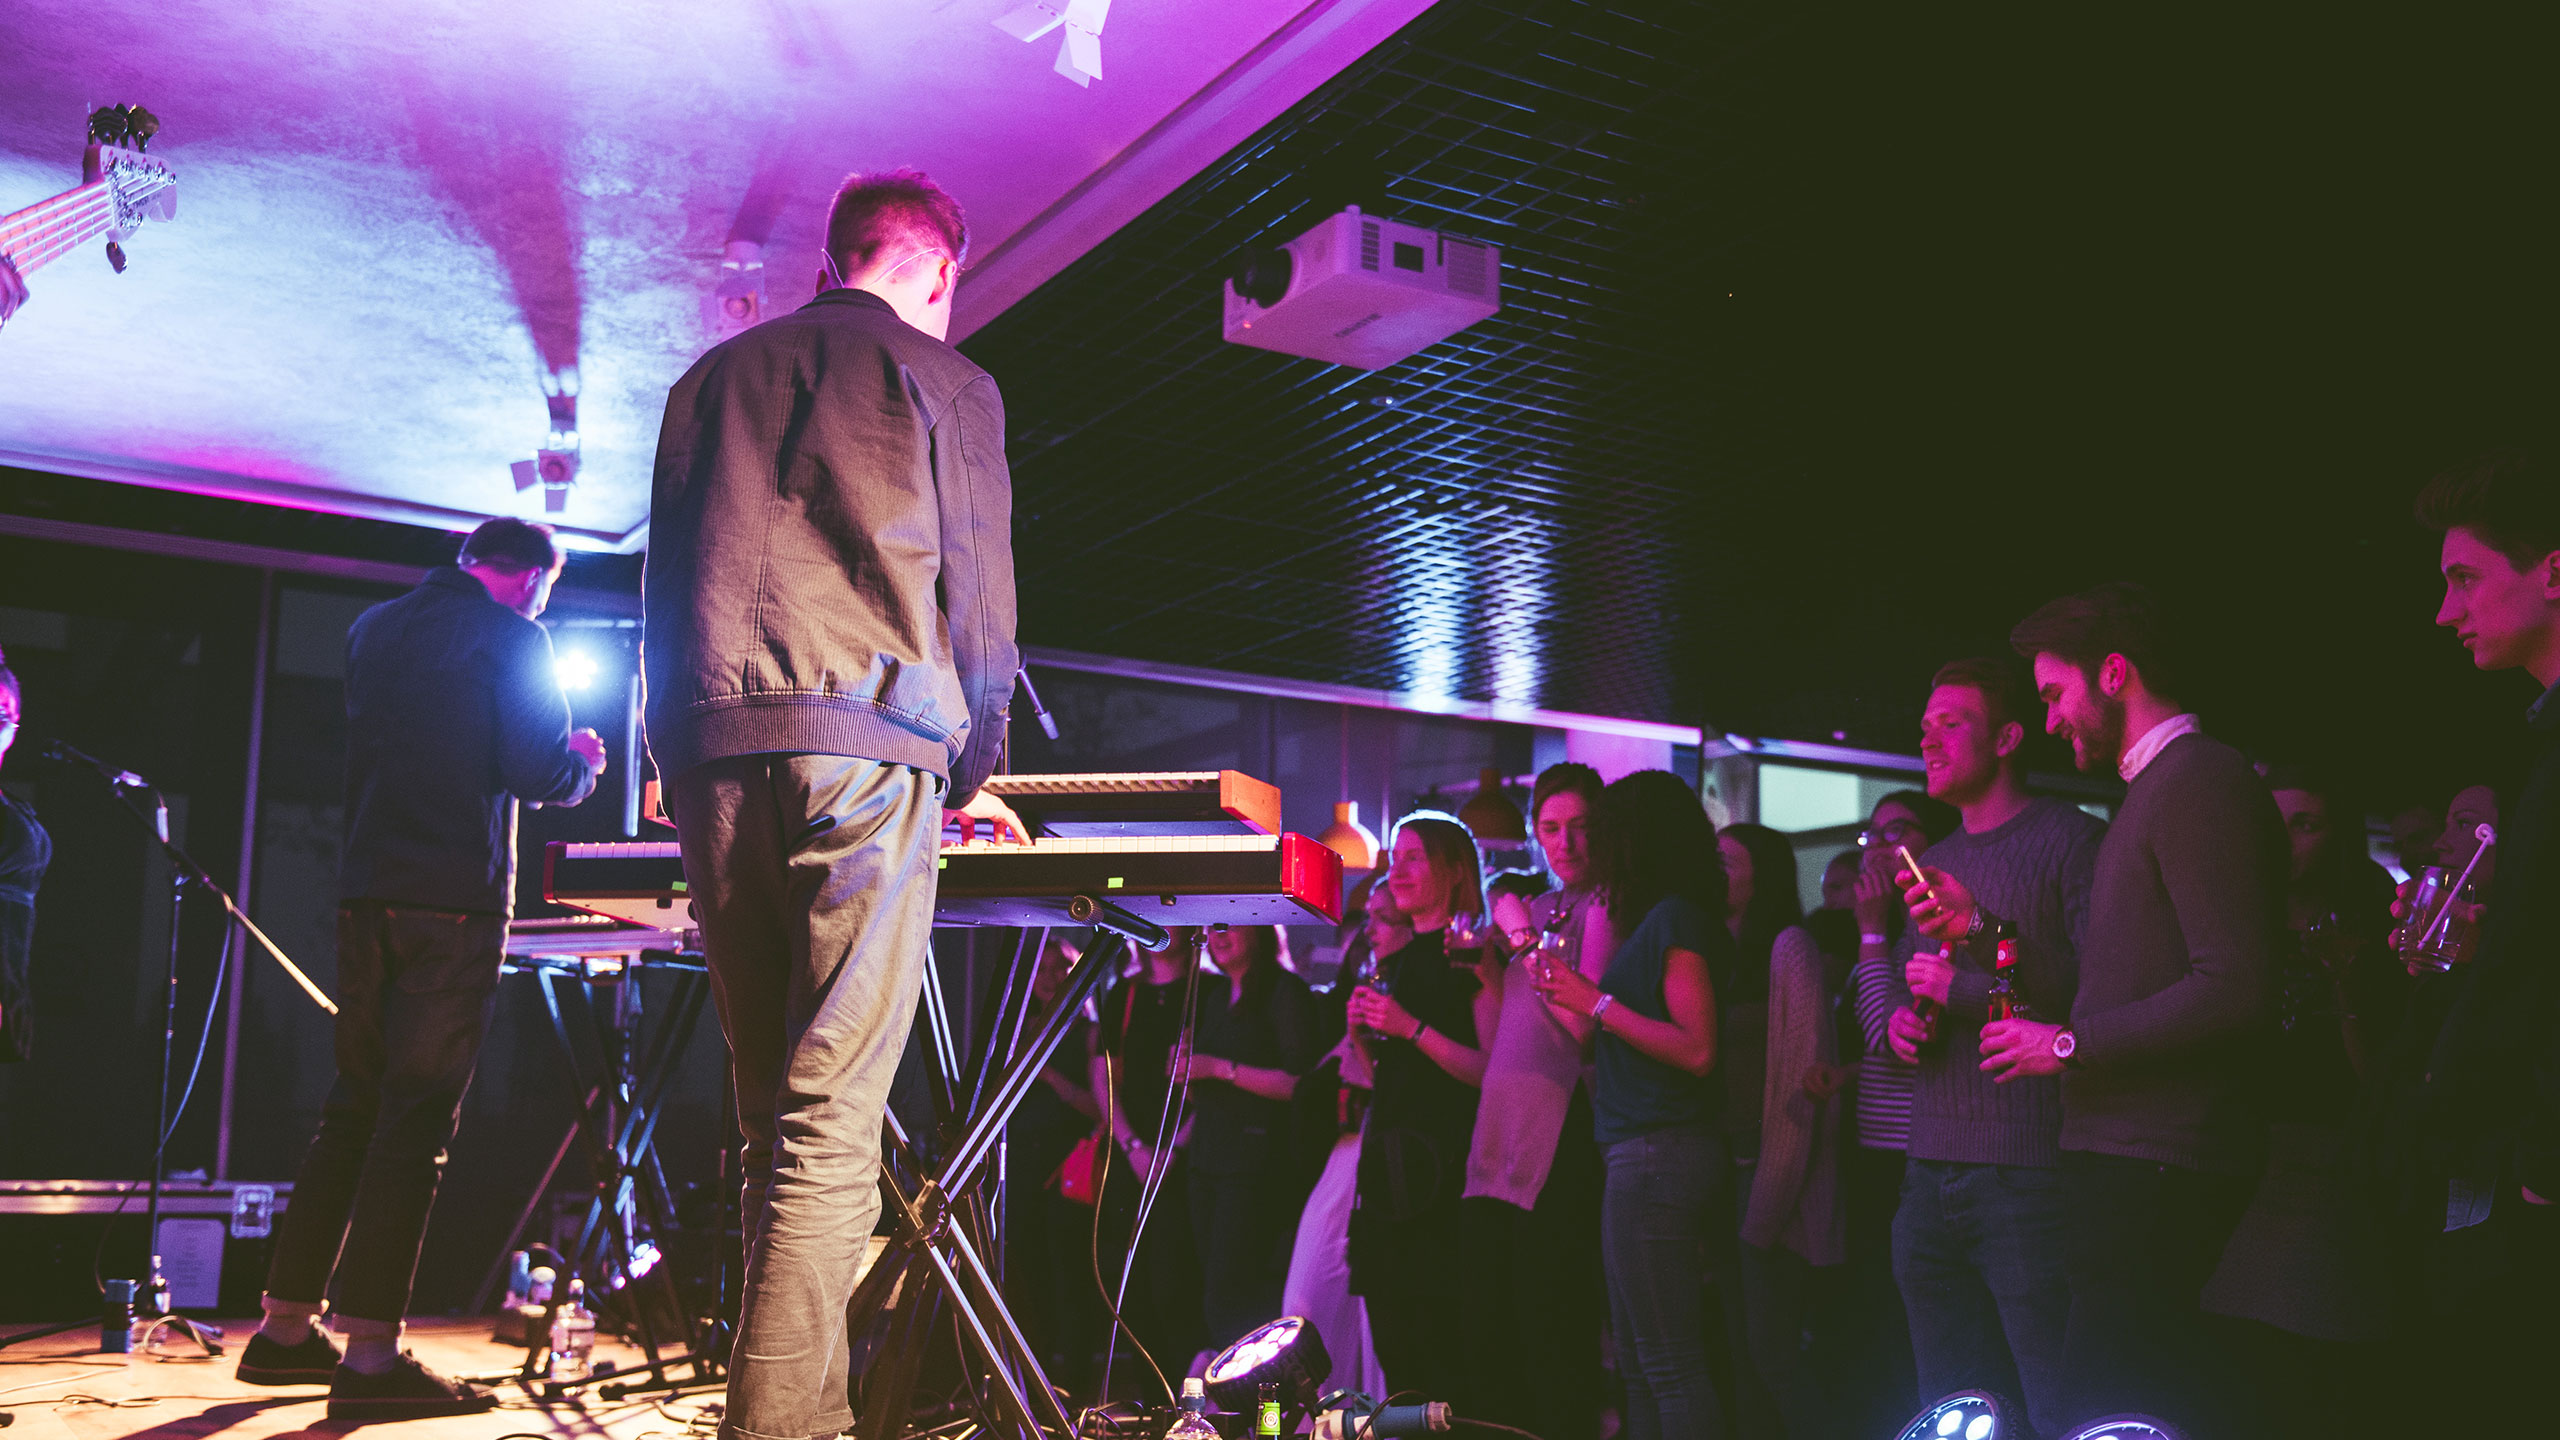 A shot from behind Honne performing keyboards and singing on stage at PRS Presents, the audience are chatting